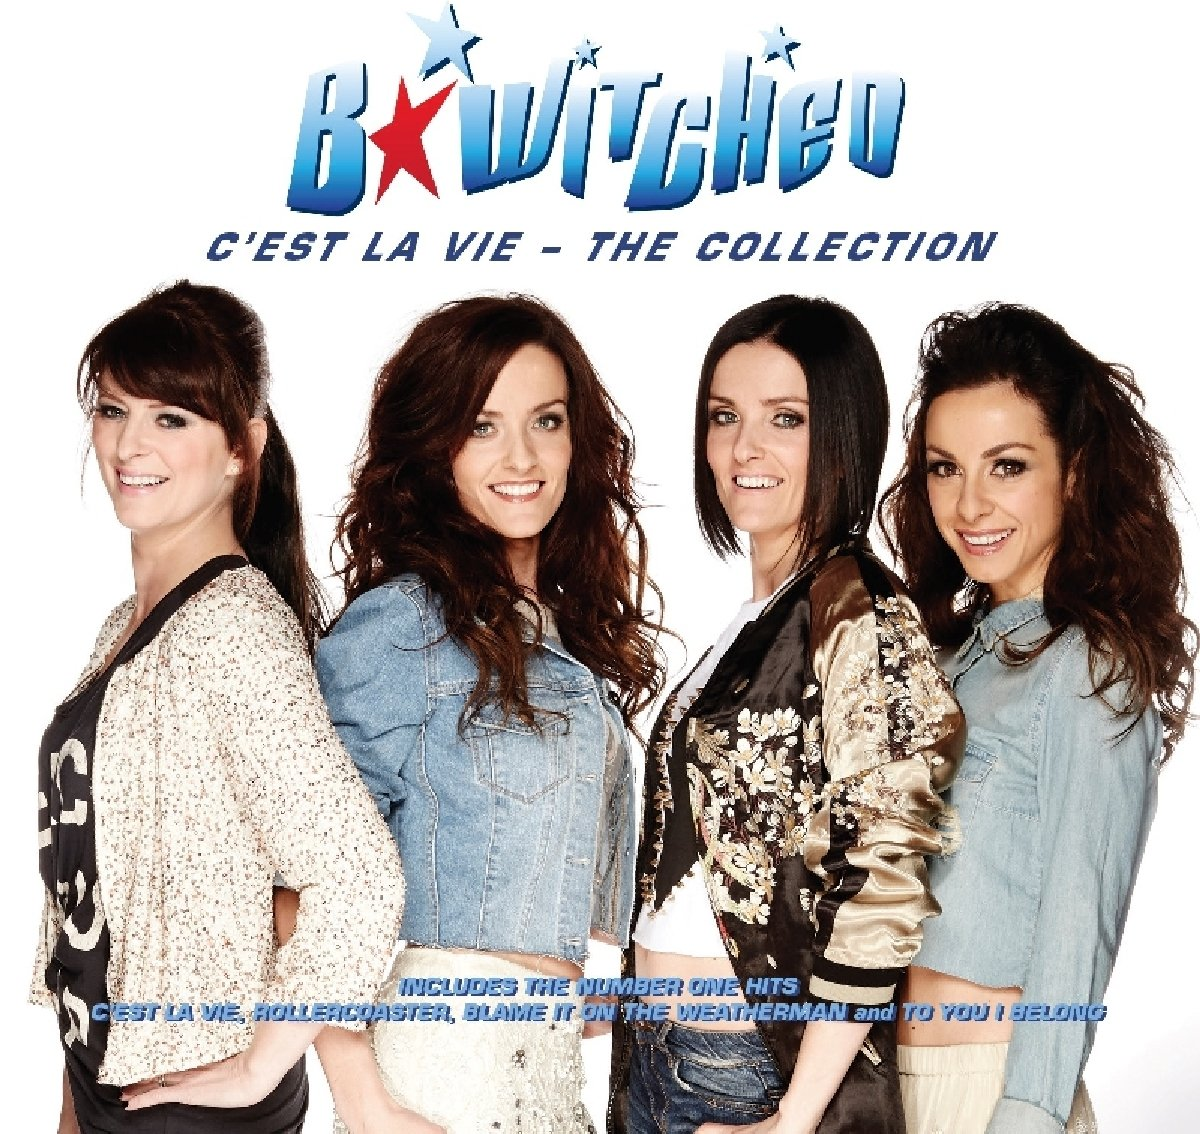 Bwitched - Cest La Vie The Collection - (MCDLX214) - 2CD - FLAC - 2016 - WRE Download